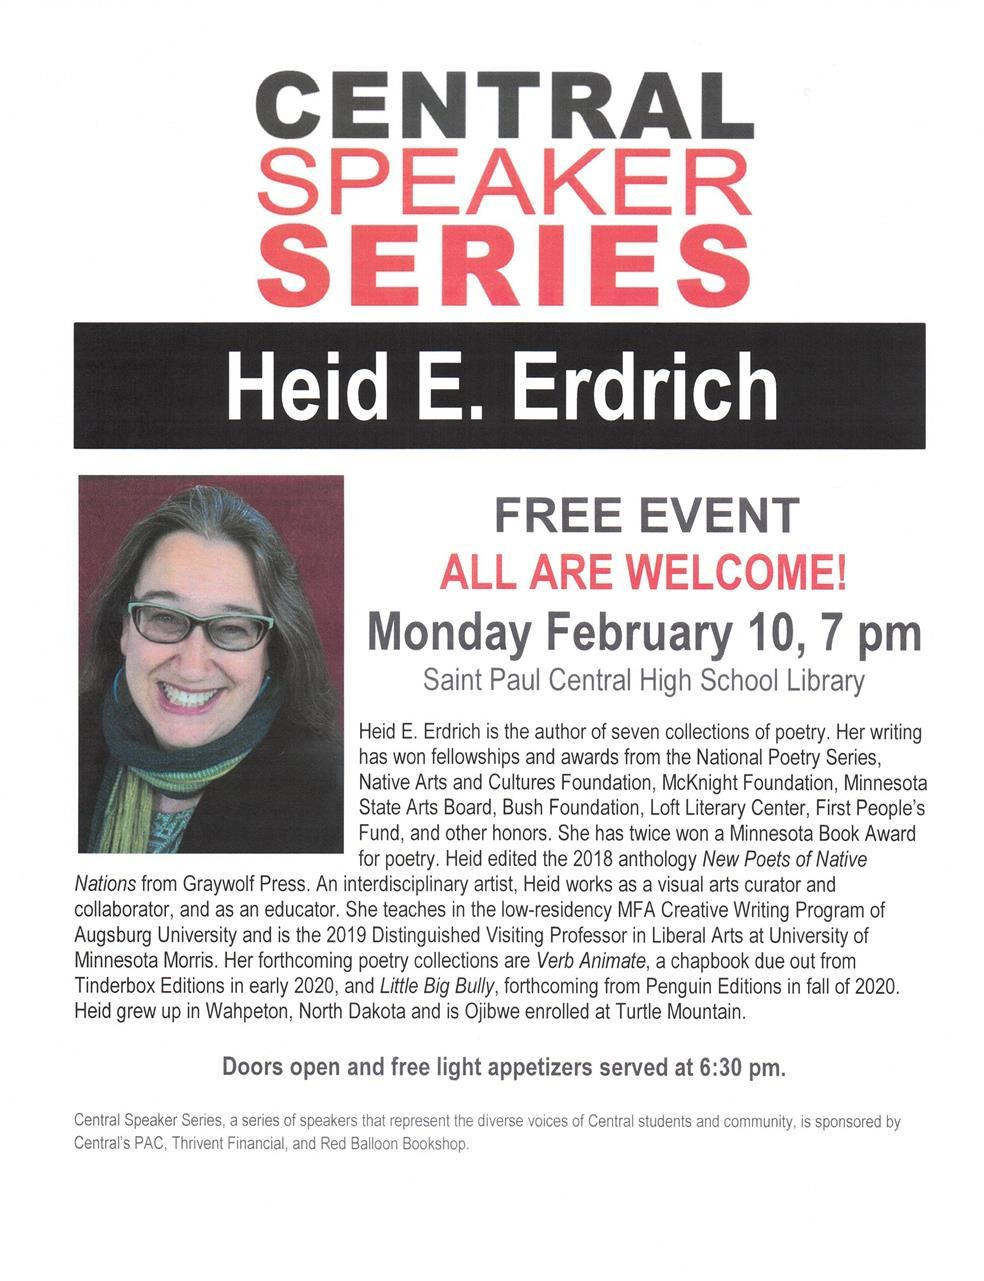 Central Speaker Series - Heid E. Erdrich